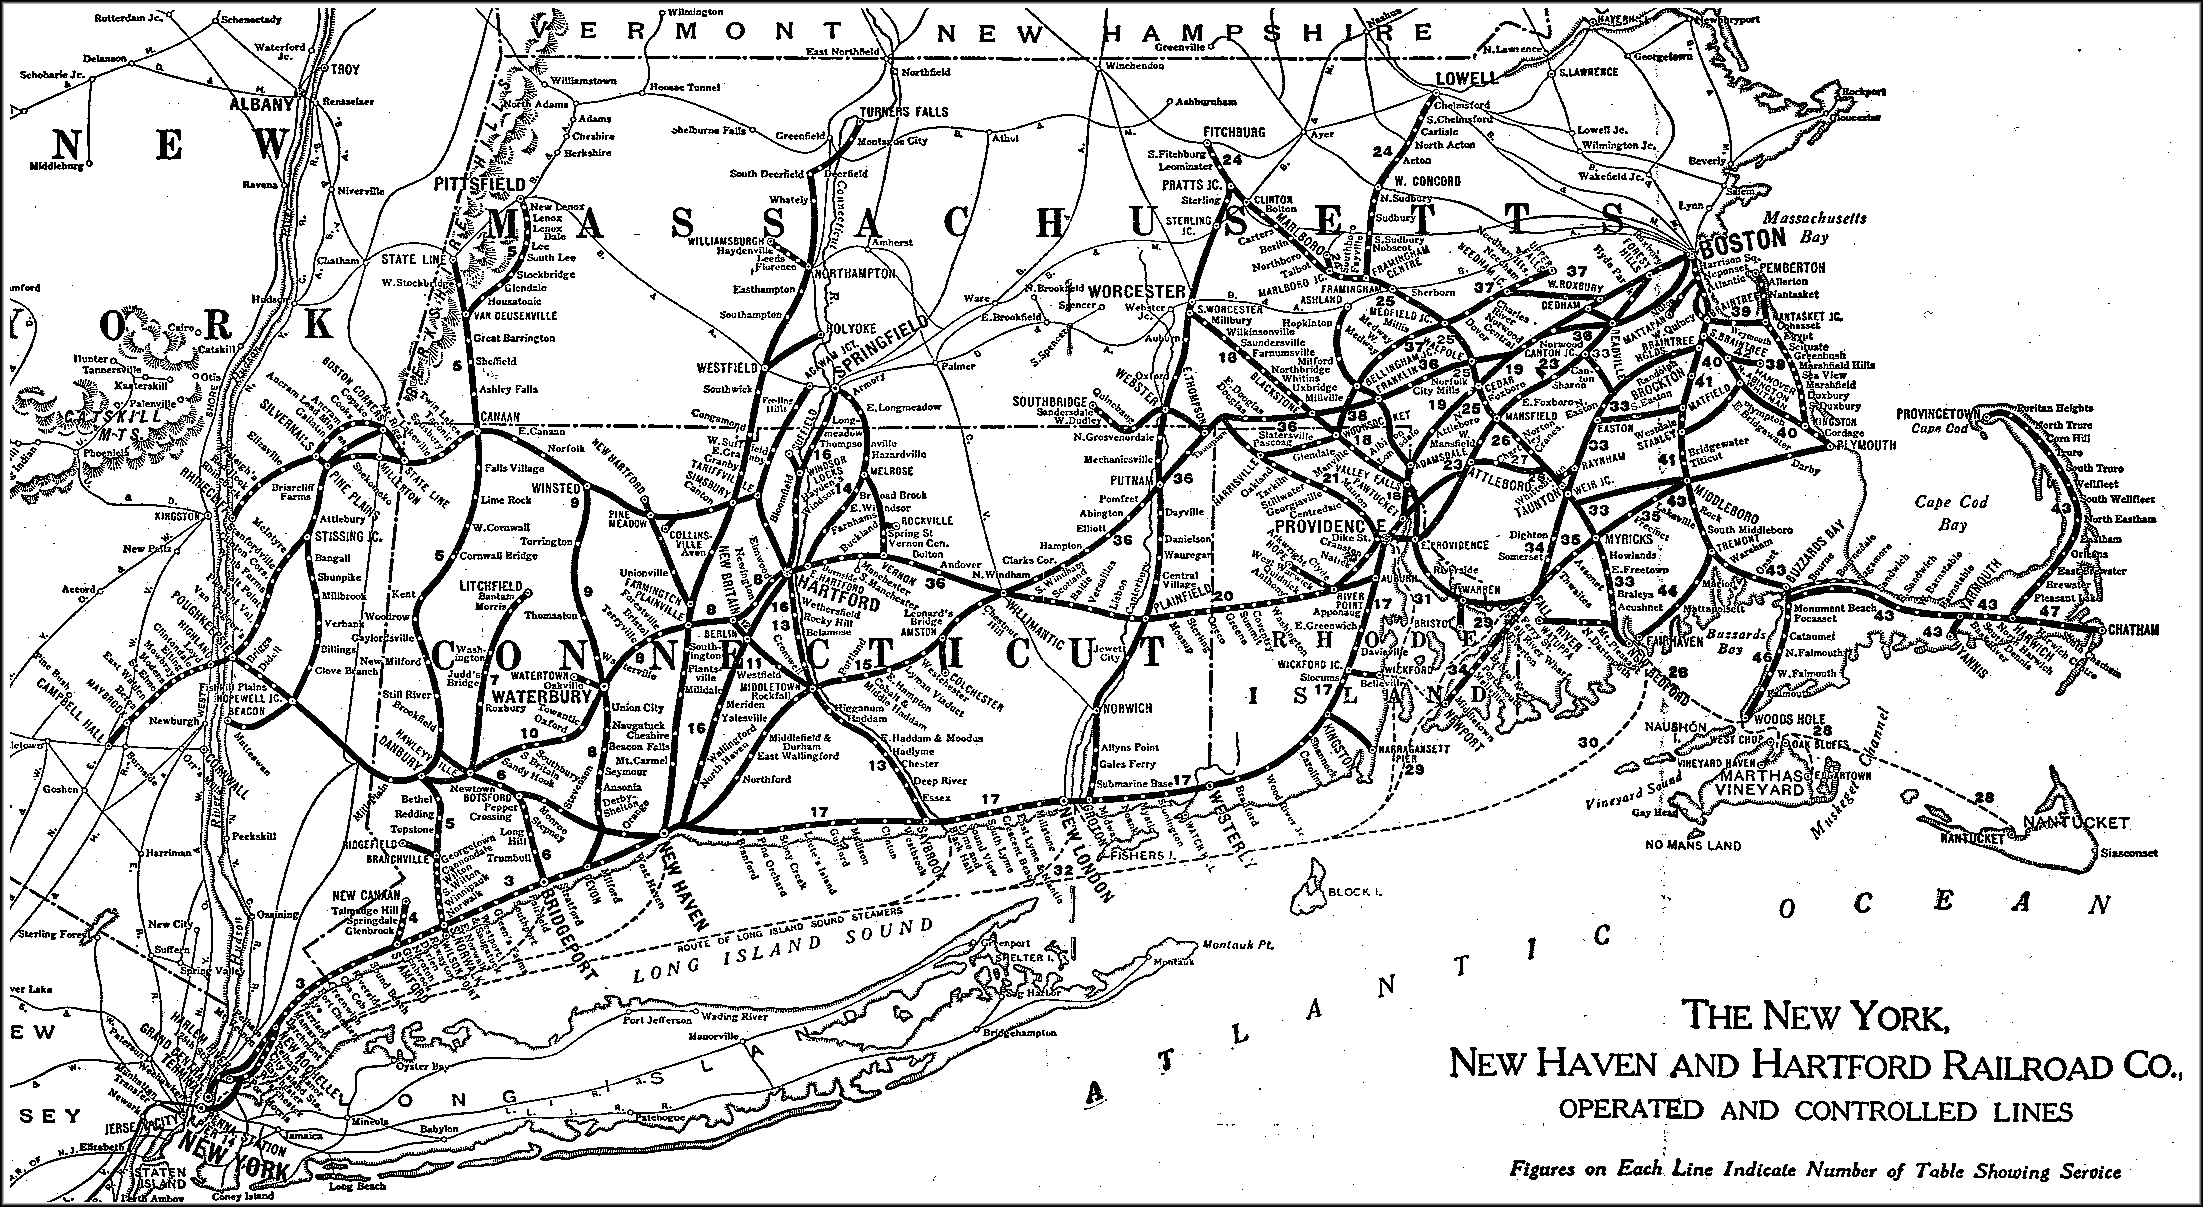 1929 New Haven Railroad map.  (NHRHTA collection)